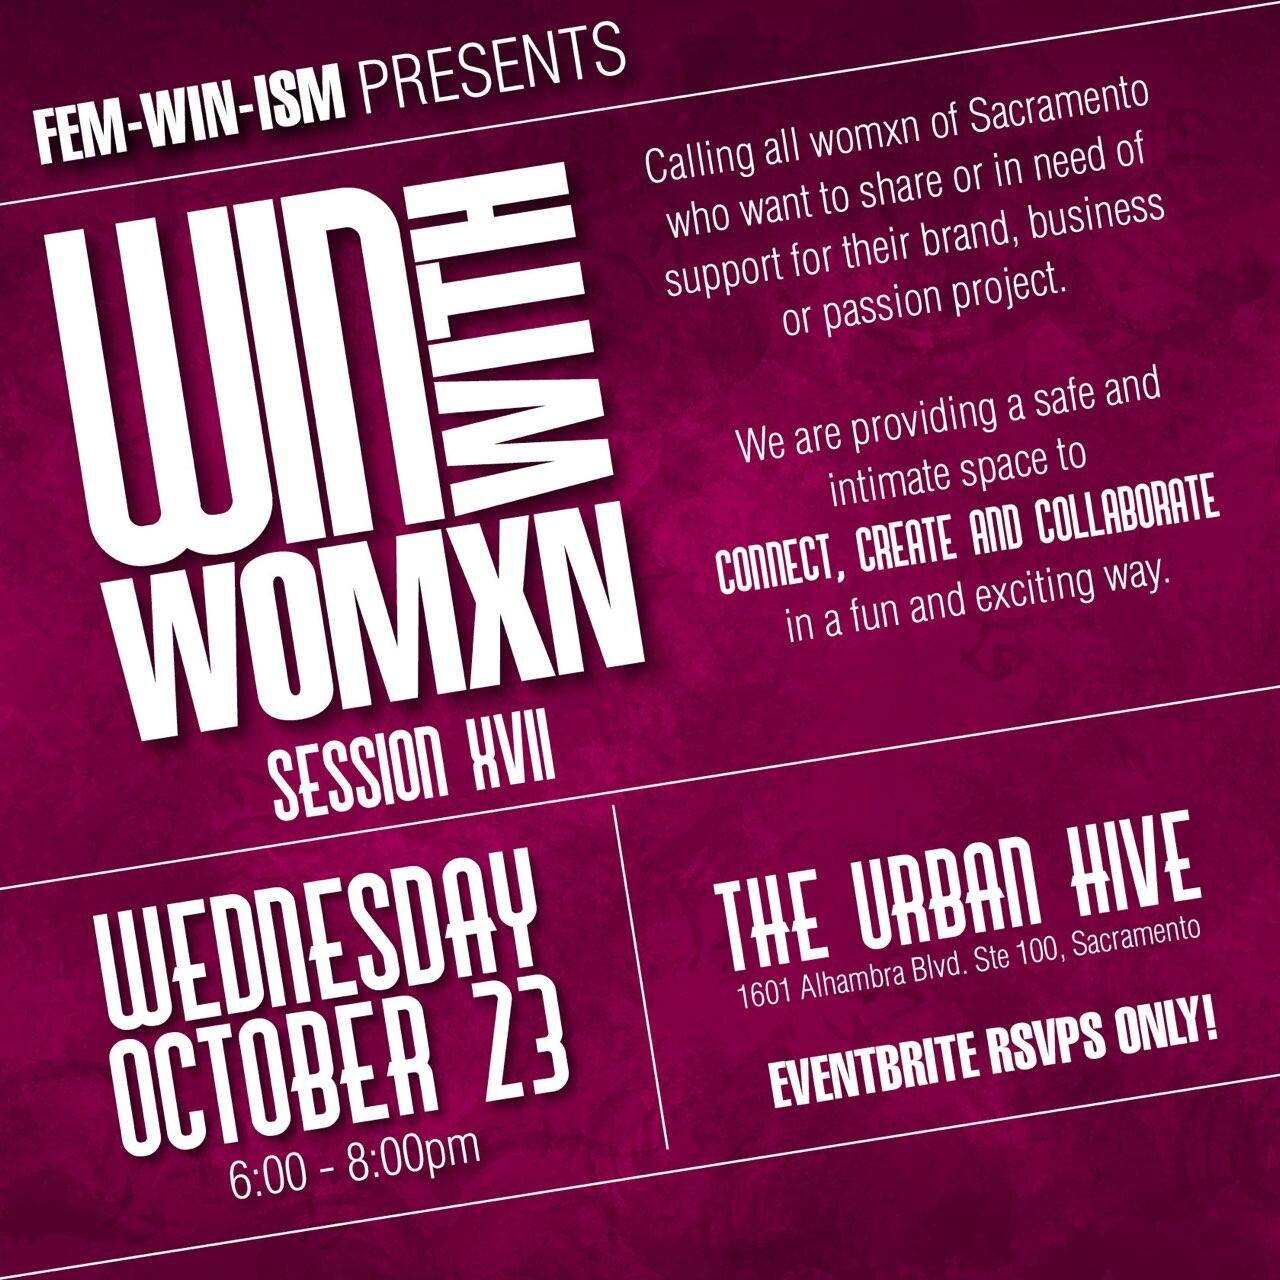 WWW Session 17 Flyer .jpg